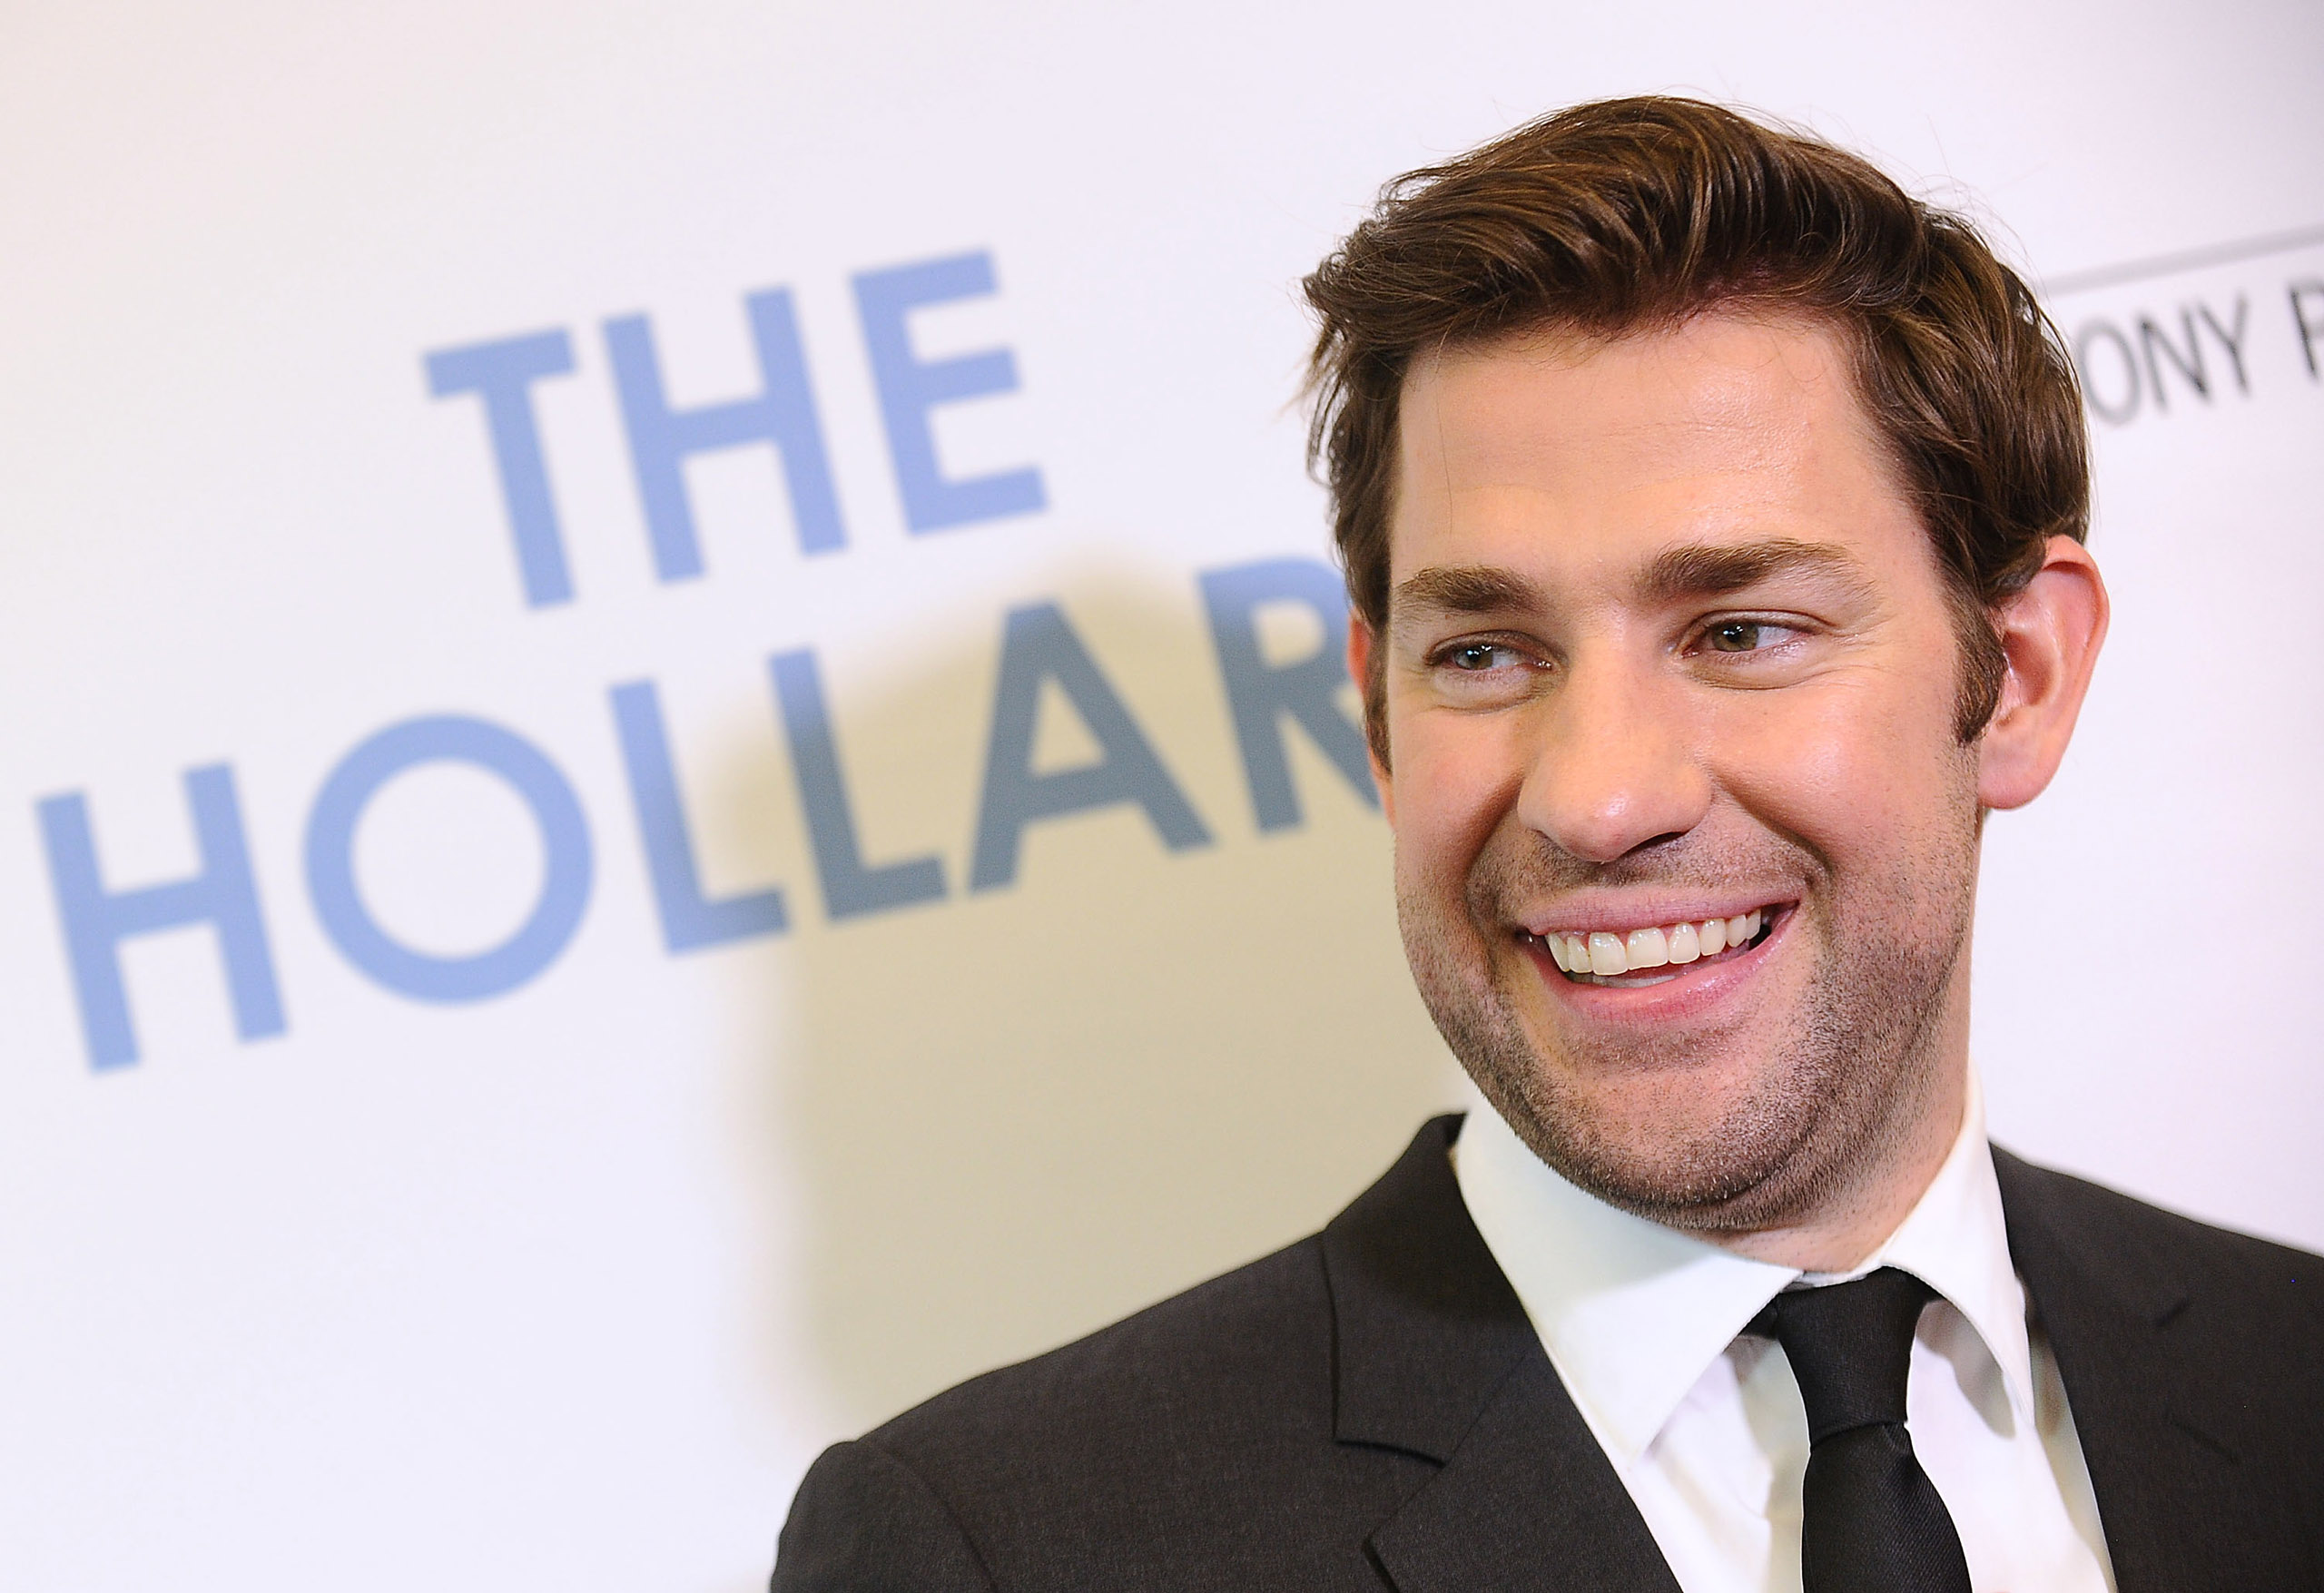 Actor John Krasinski attends the premiere of  The Hollars  at Linwood Dunn Theater on August 22, 2016 in Los Angeles, California.